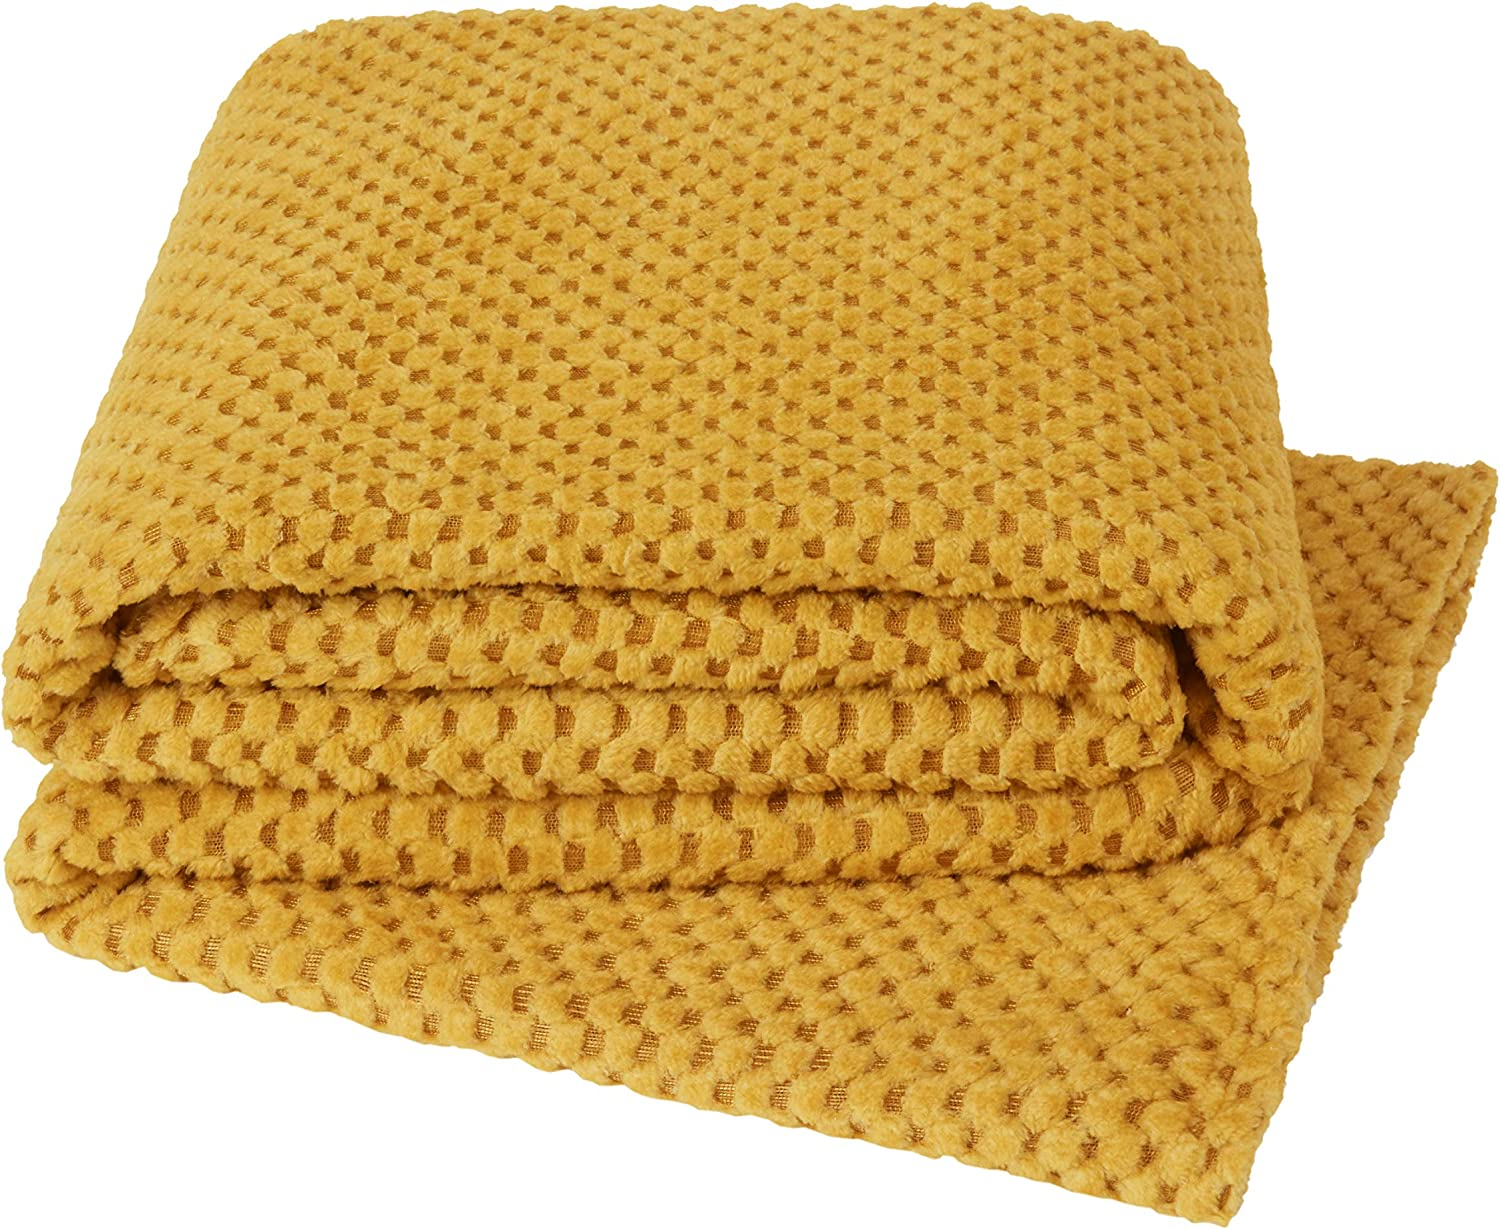 Yourhome Throw Soft Cosy Teddy Popcorn Suitable For Bed Chair Or Sofa 130x180 Ochre Amazon Co Uk Kitchen Home